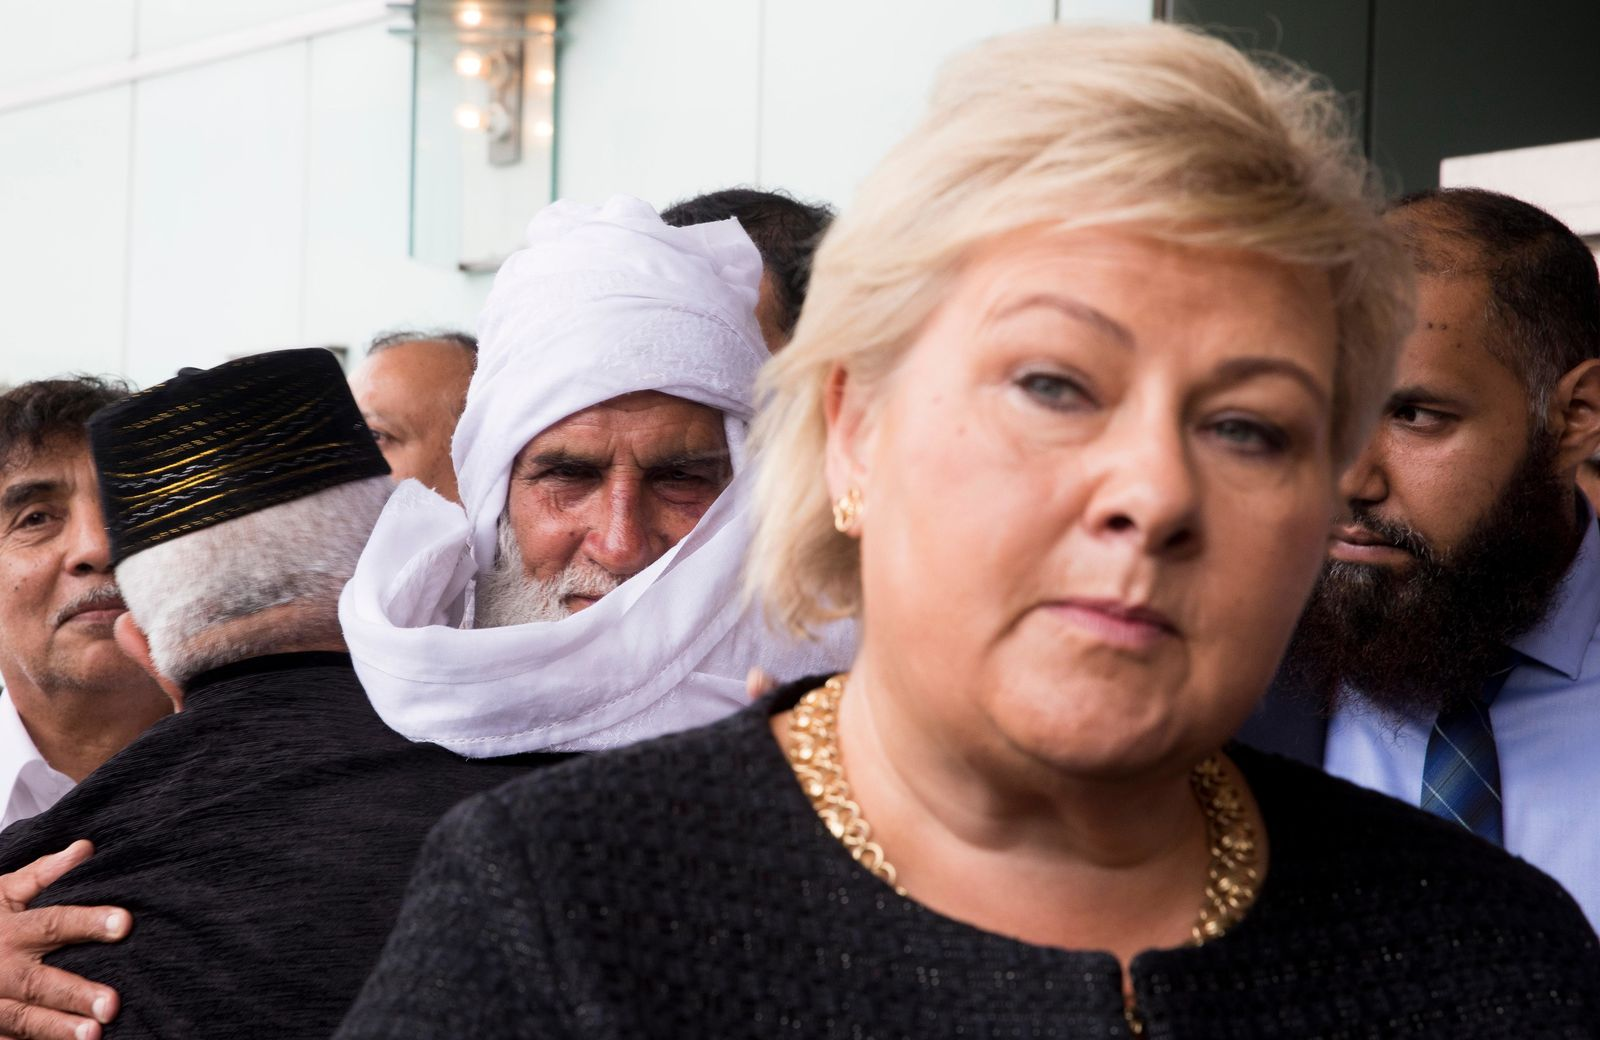 Norway's Prime Minister Erna Solberg and Mohamed Rafiq background centre left, stand outside Thon Hotel in Baerum, Norway, Sunday, Aug. 11, 2019. (Terje Pedersen  /NTB scanpix via AP)